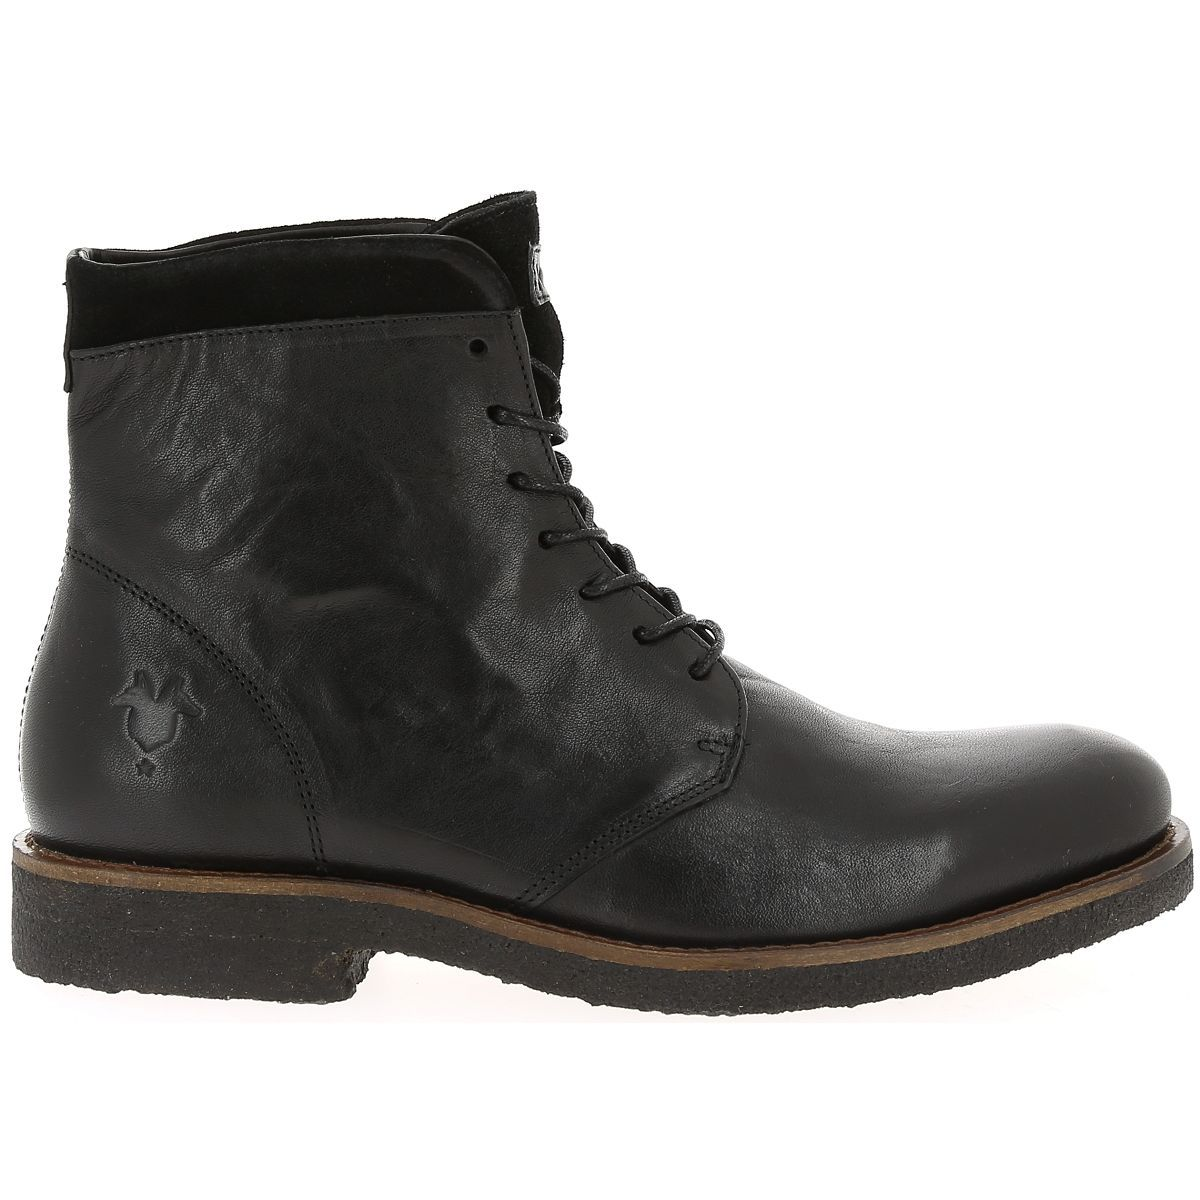 Cuir Boots Fringant Boots Fringant Taille40;41;42;43;44;45 35 Taille40;41;42;43;44;45 Boots 35 Cuir f76byg